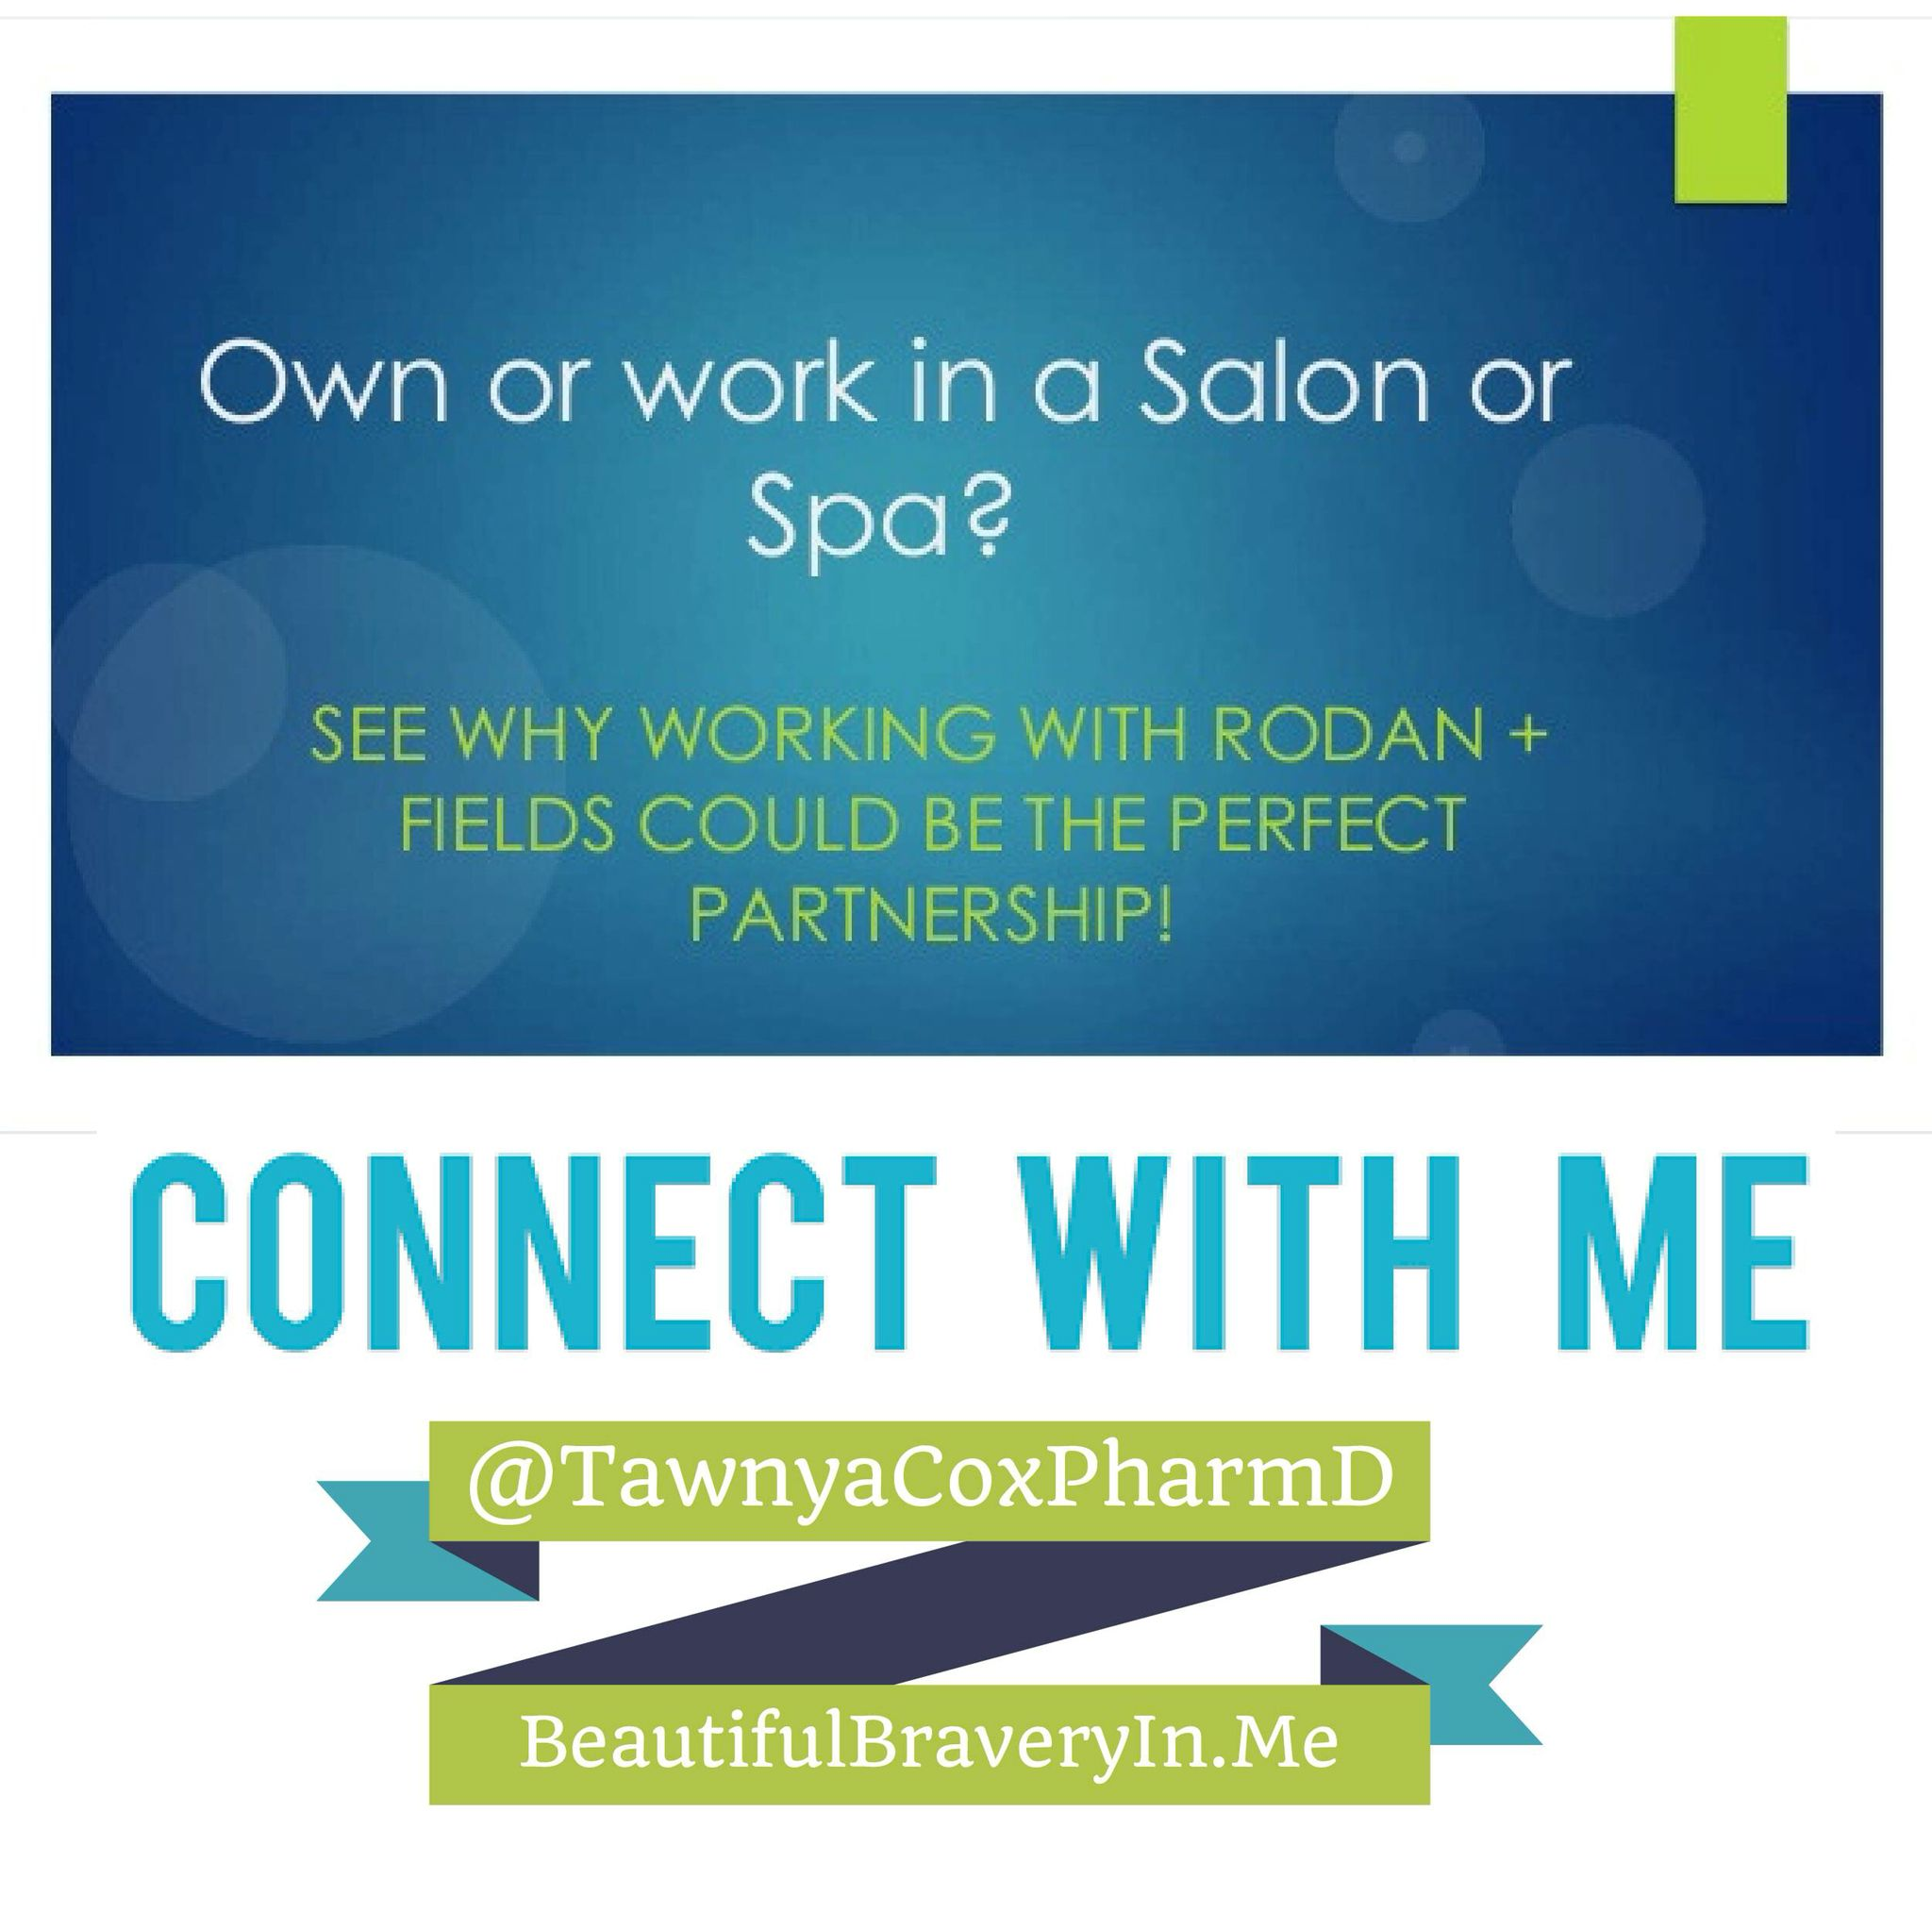 Details: https://www.facebook.com/beautifulbraverywithrodanandfields/  Contact: @TawnyaCoxPharmD #beautifulbraveryin.me